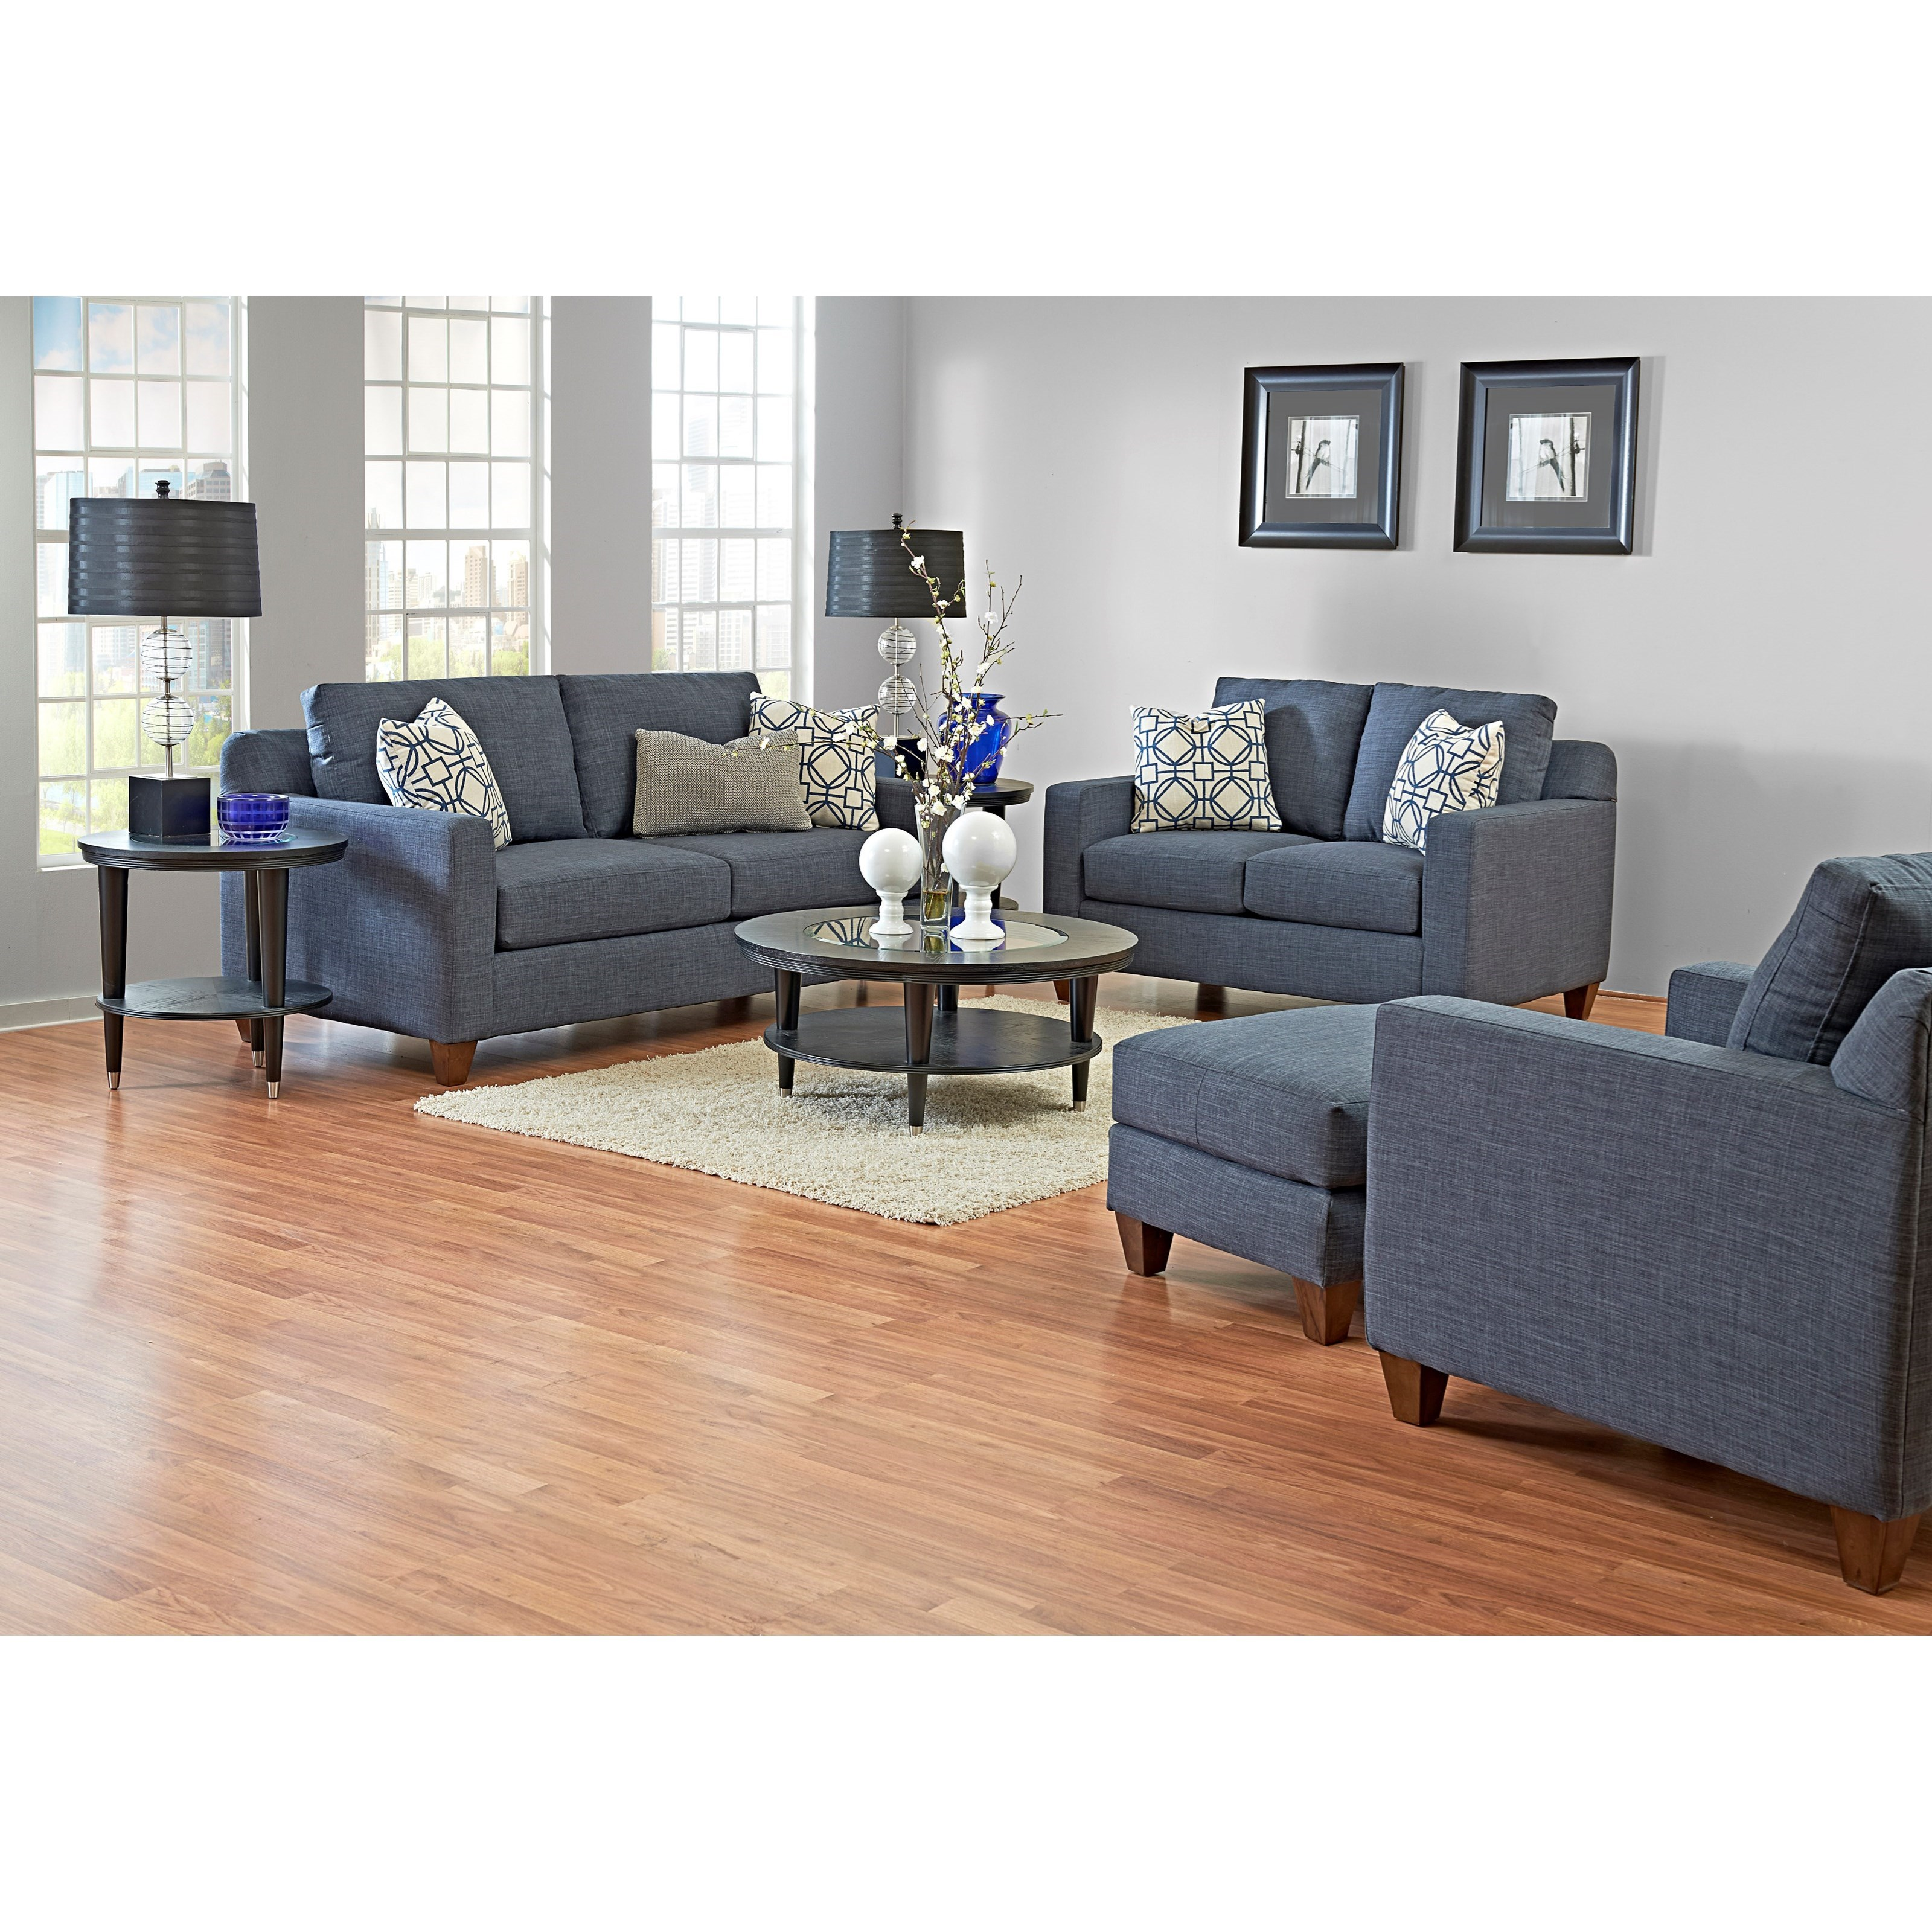 Klaussner bosco living room group pilgrim furniture city for Living room furniture groups